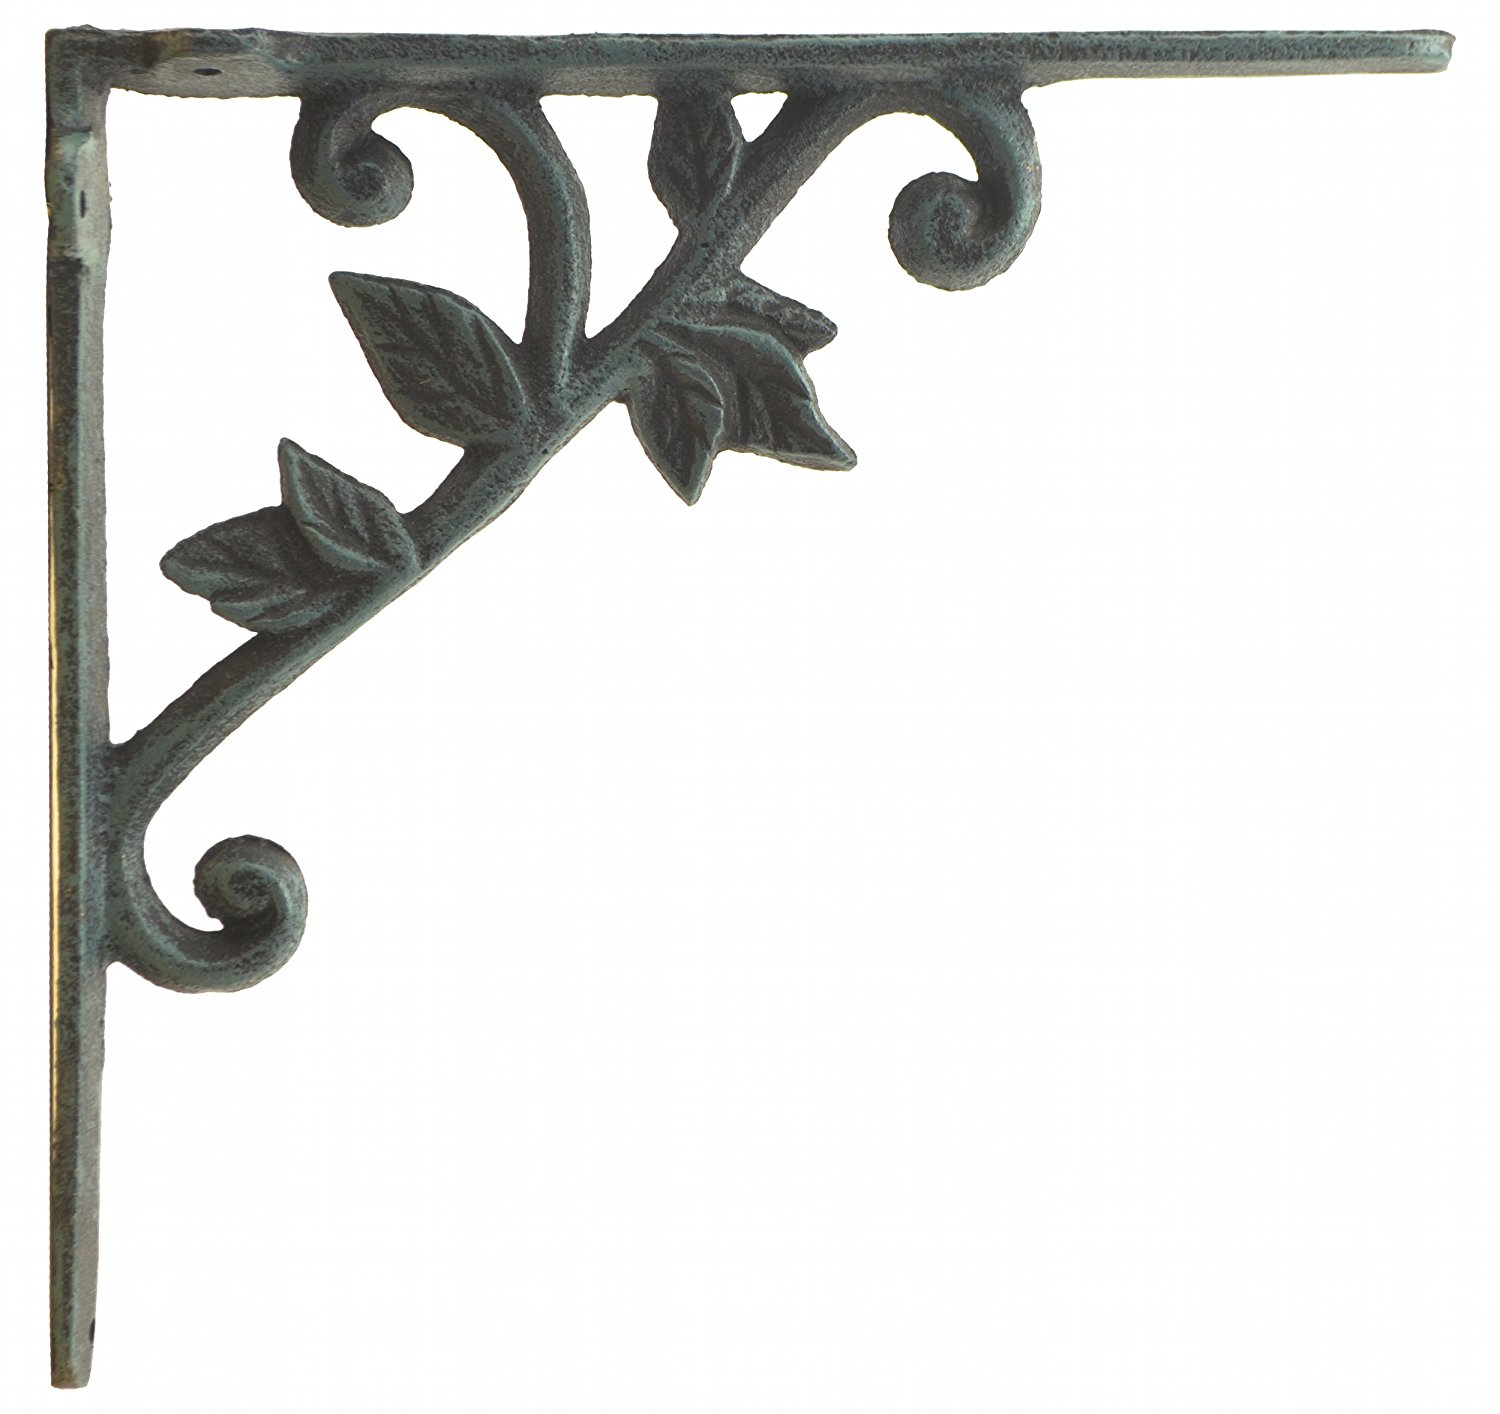 "Import Wholesales Wall Shelf Bracket Vine & Leaf Pattern Decorative Verdigris Cast Iron Brace 8.375"" Deep"